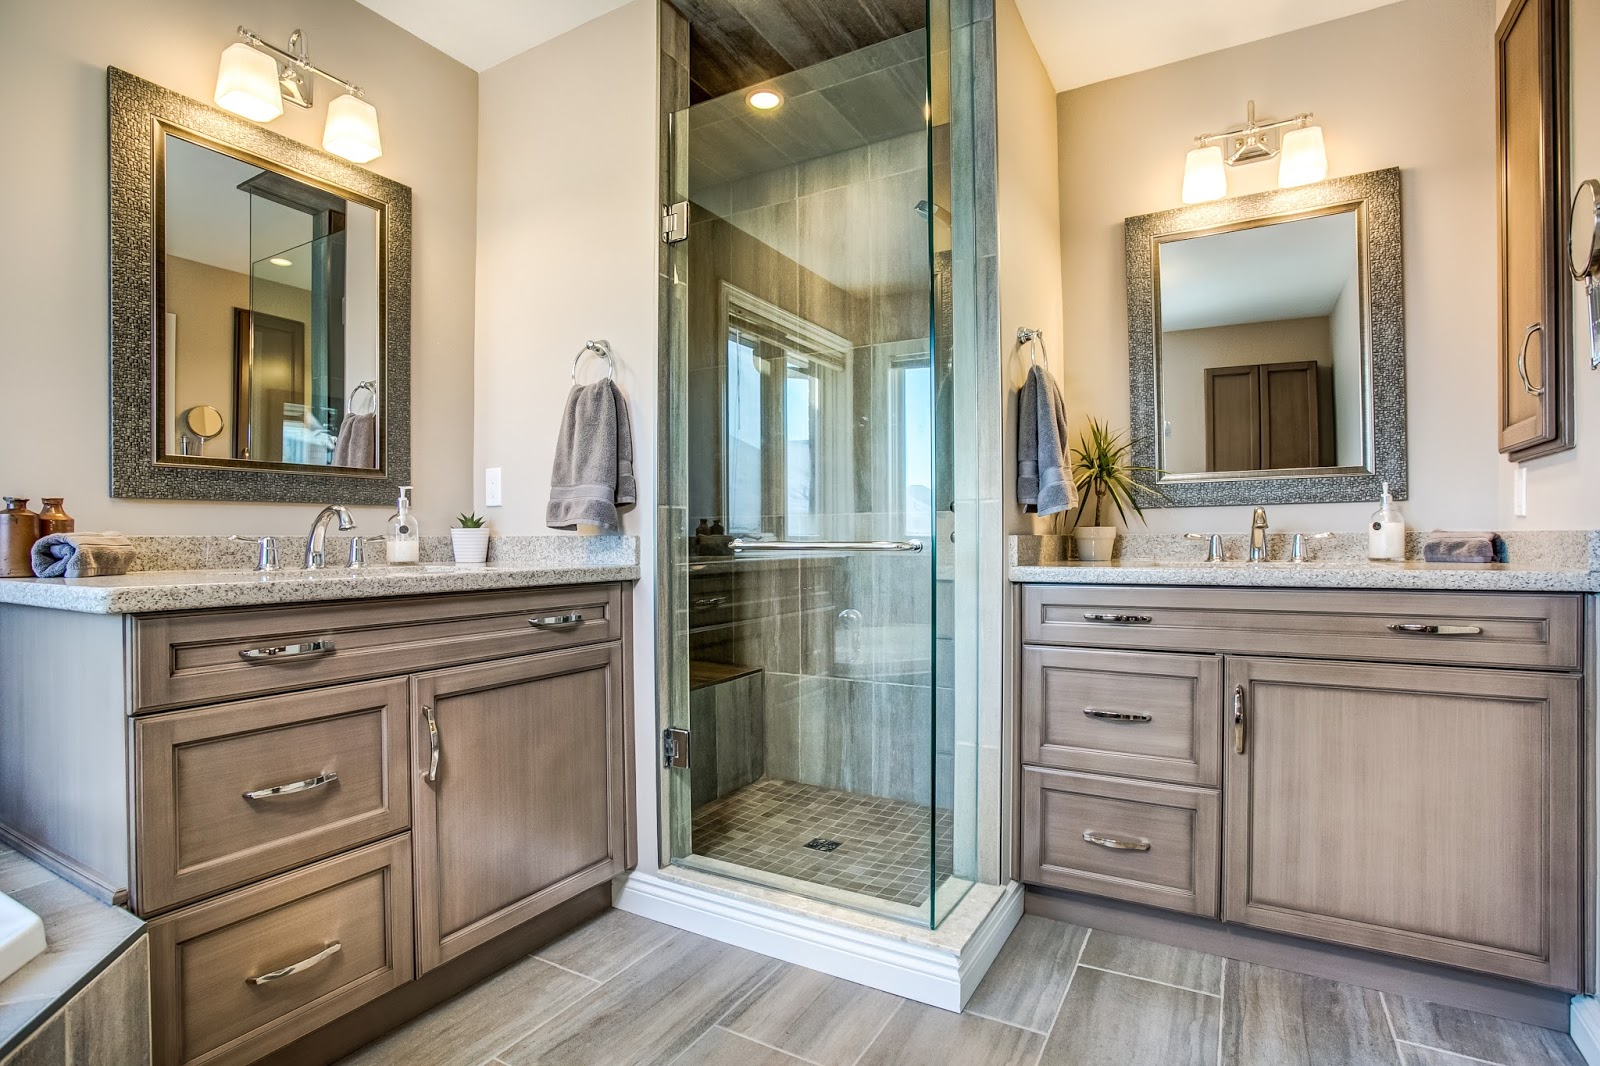 this guide will cover the steps for planning your bathroom remodel while also providing a breakdown of the costs for the following